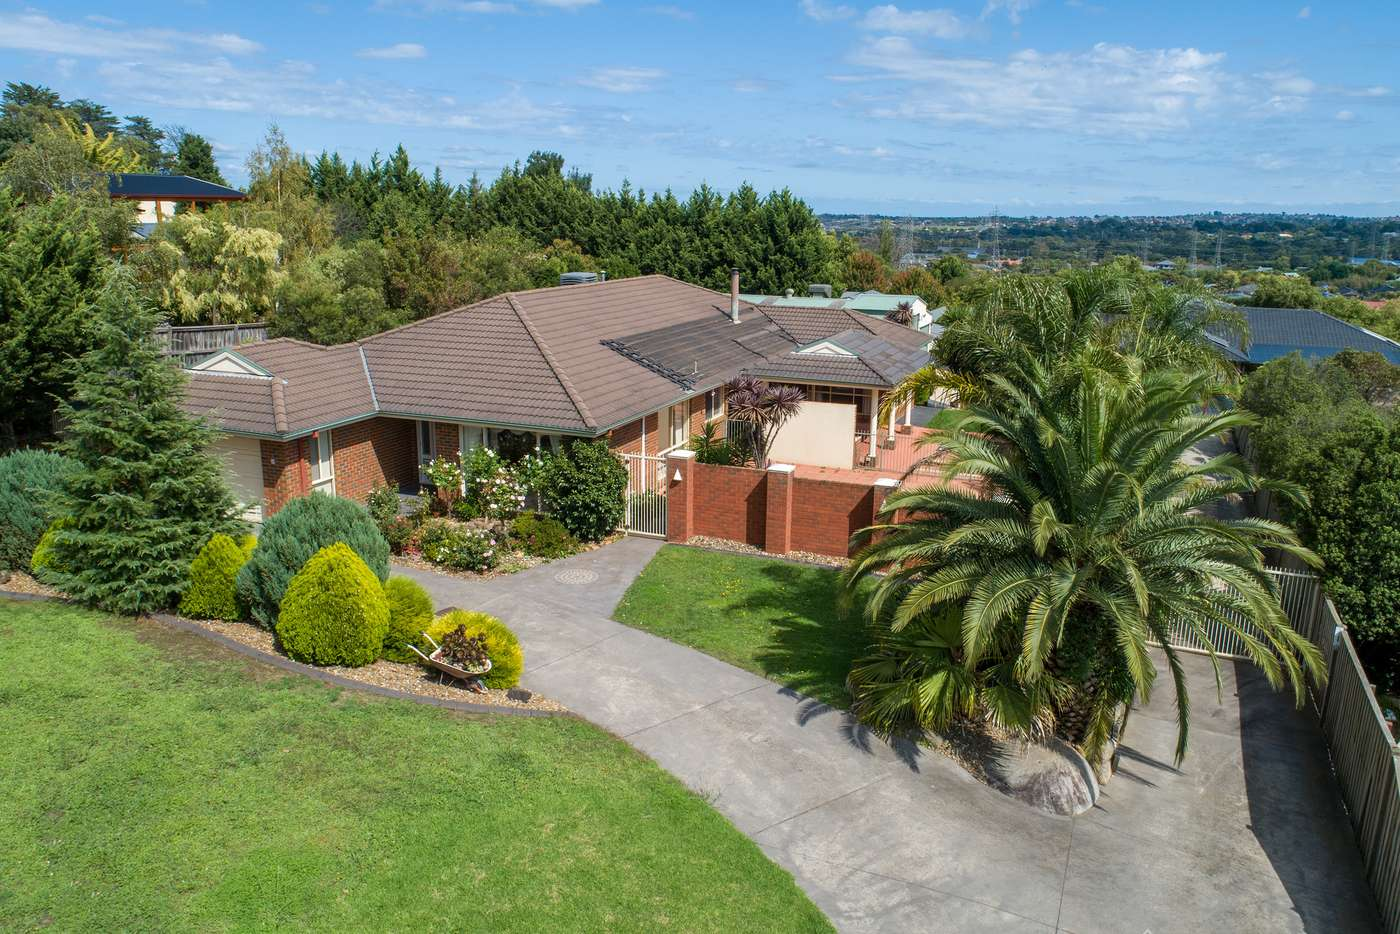 Main view of Homely house listing, 19 John Joseph Court, Narre Warren North VIC 3804